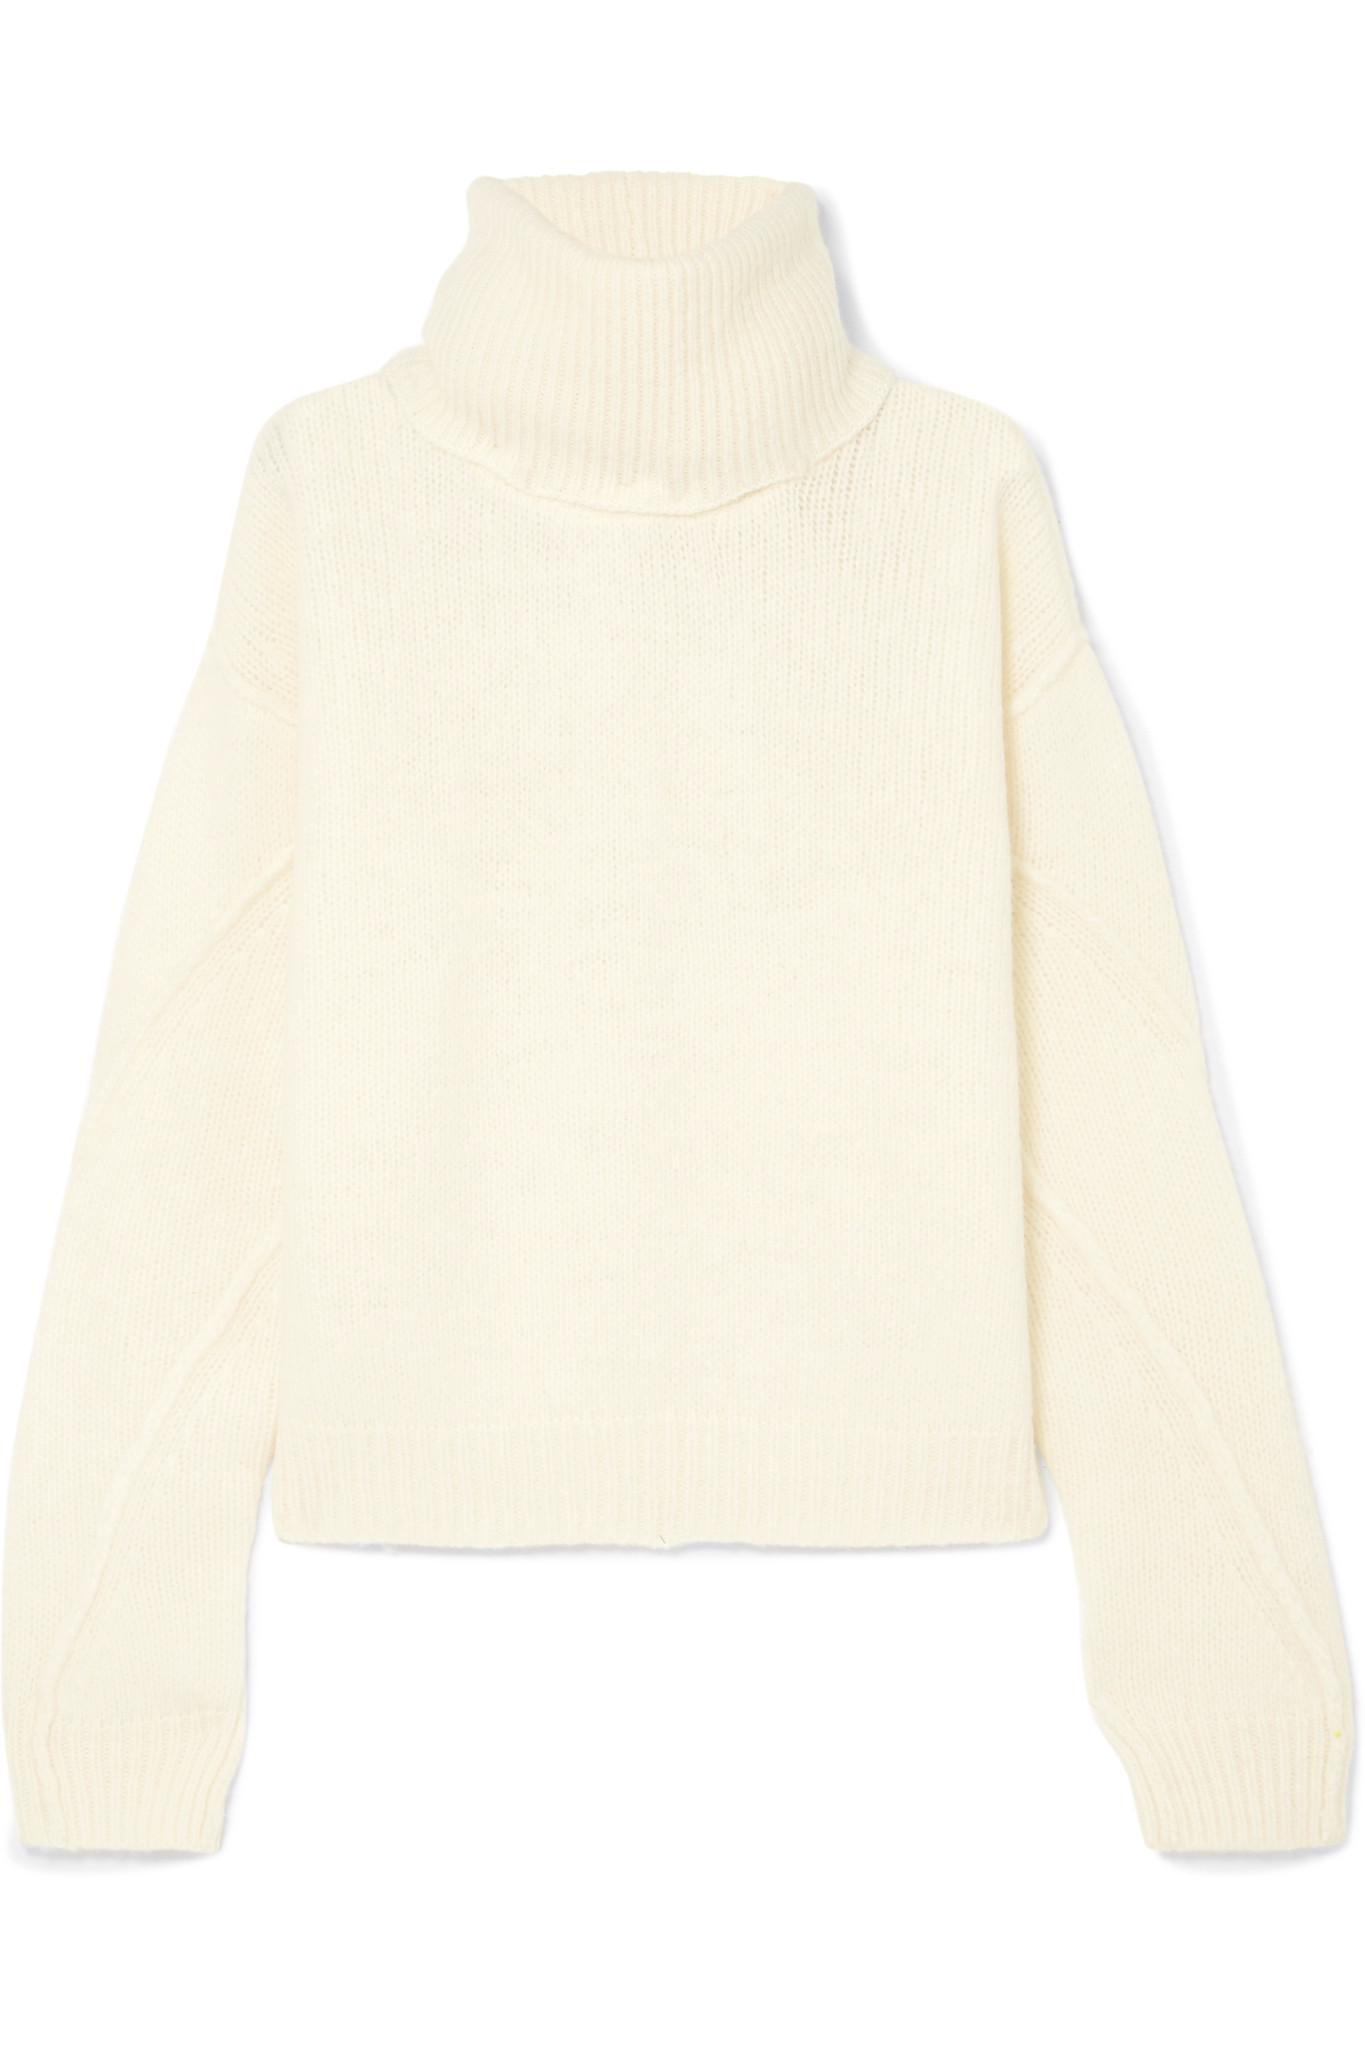 7a05020a5f Tory Burch. Women s White Eva Convertible Oversized Wool-blend Turtleneck  Jumper